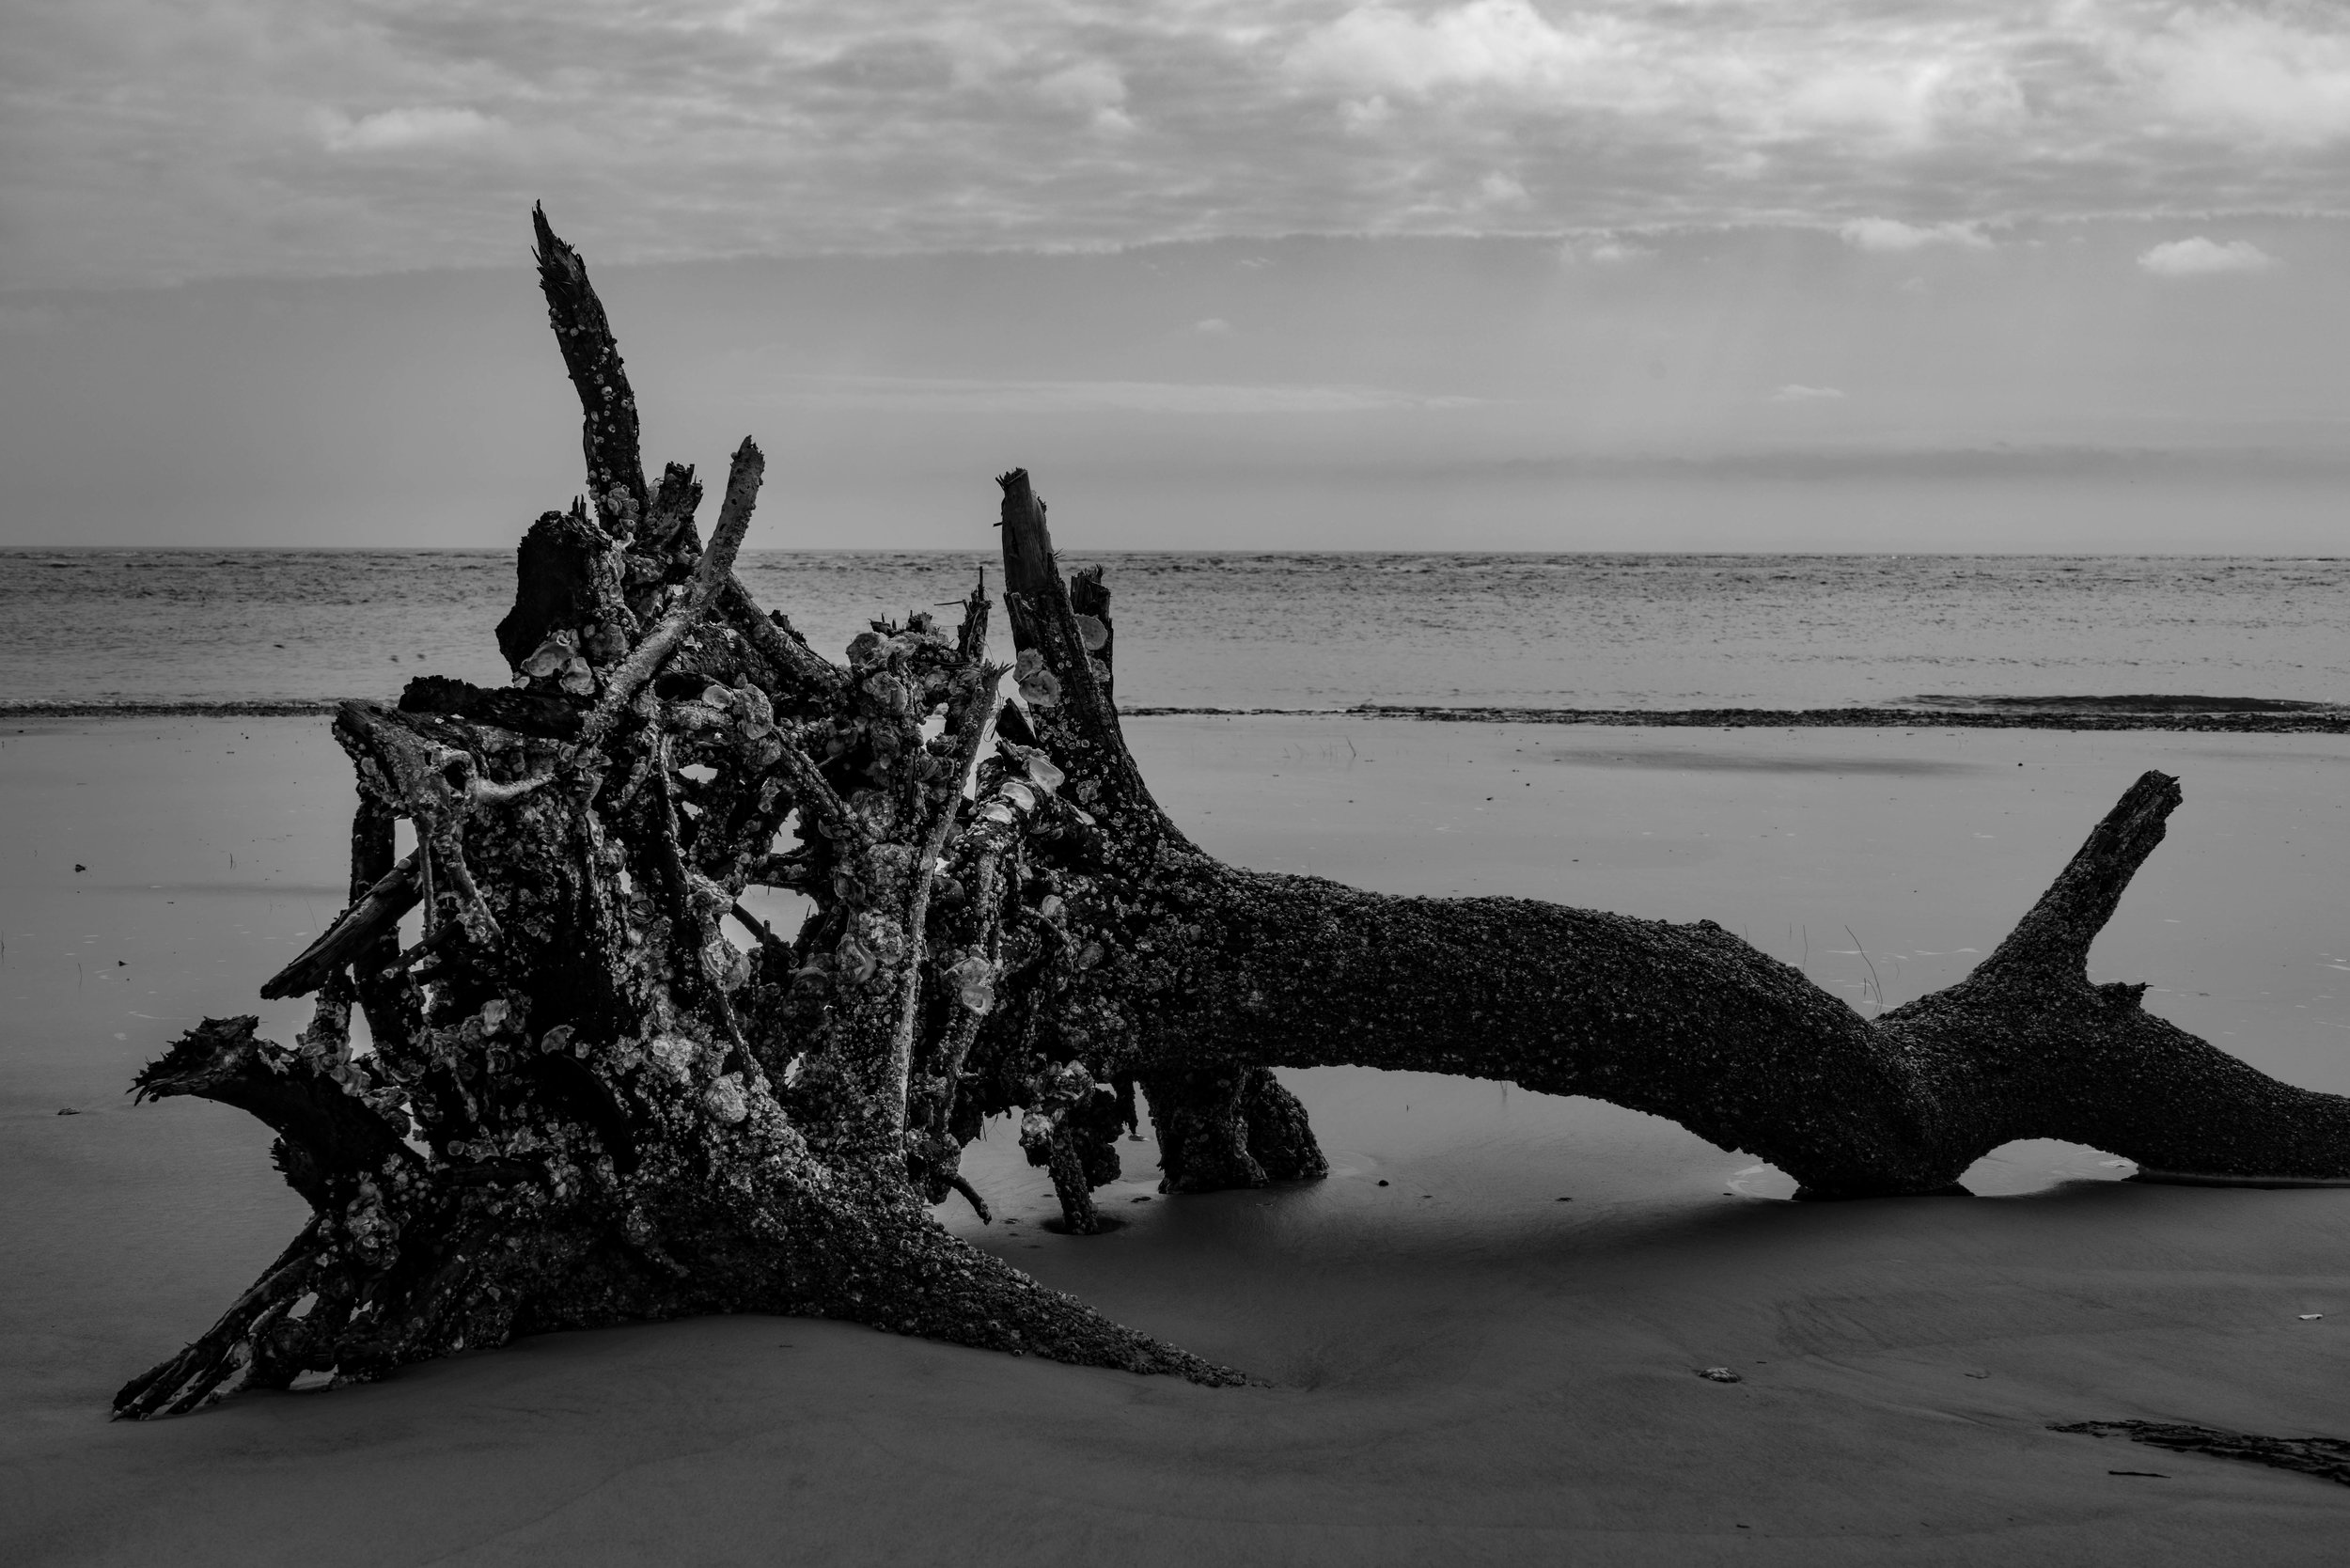 Black & White tree on Little Tybee Island via micahdeyoung.com